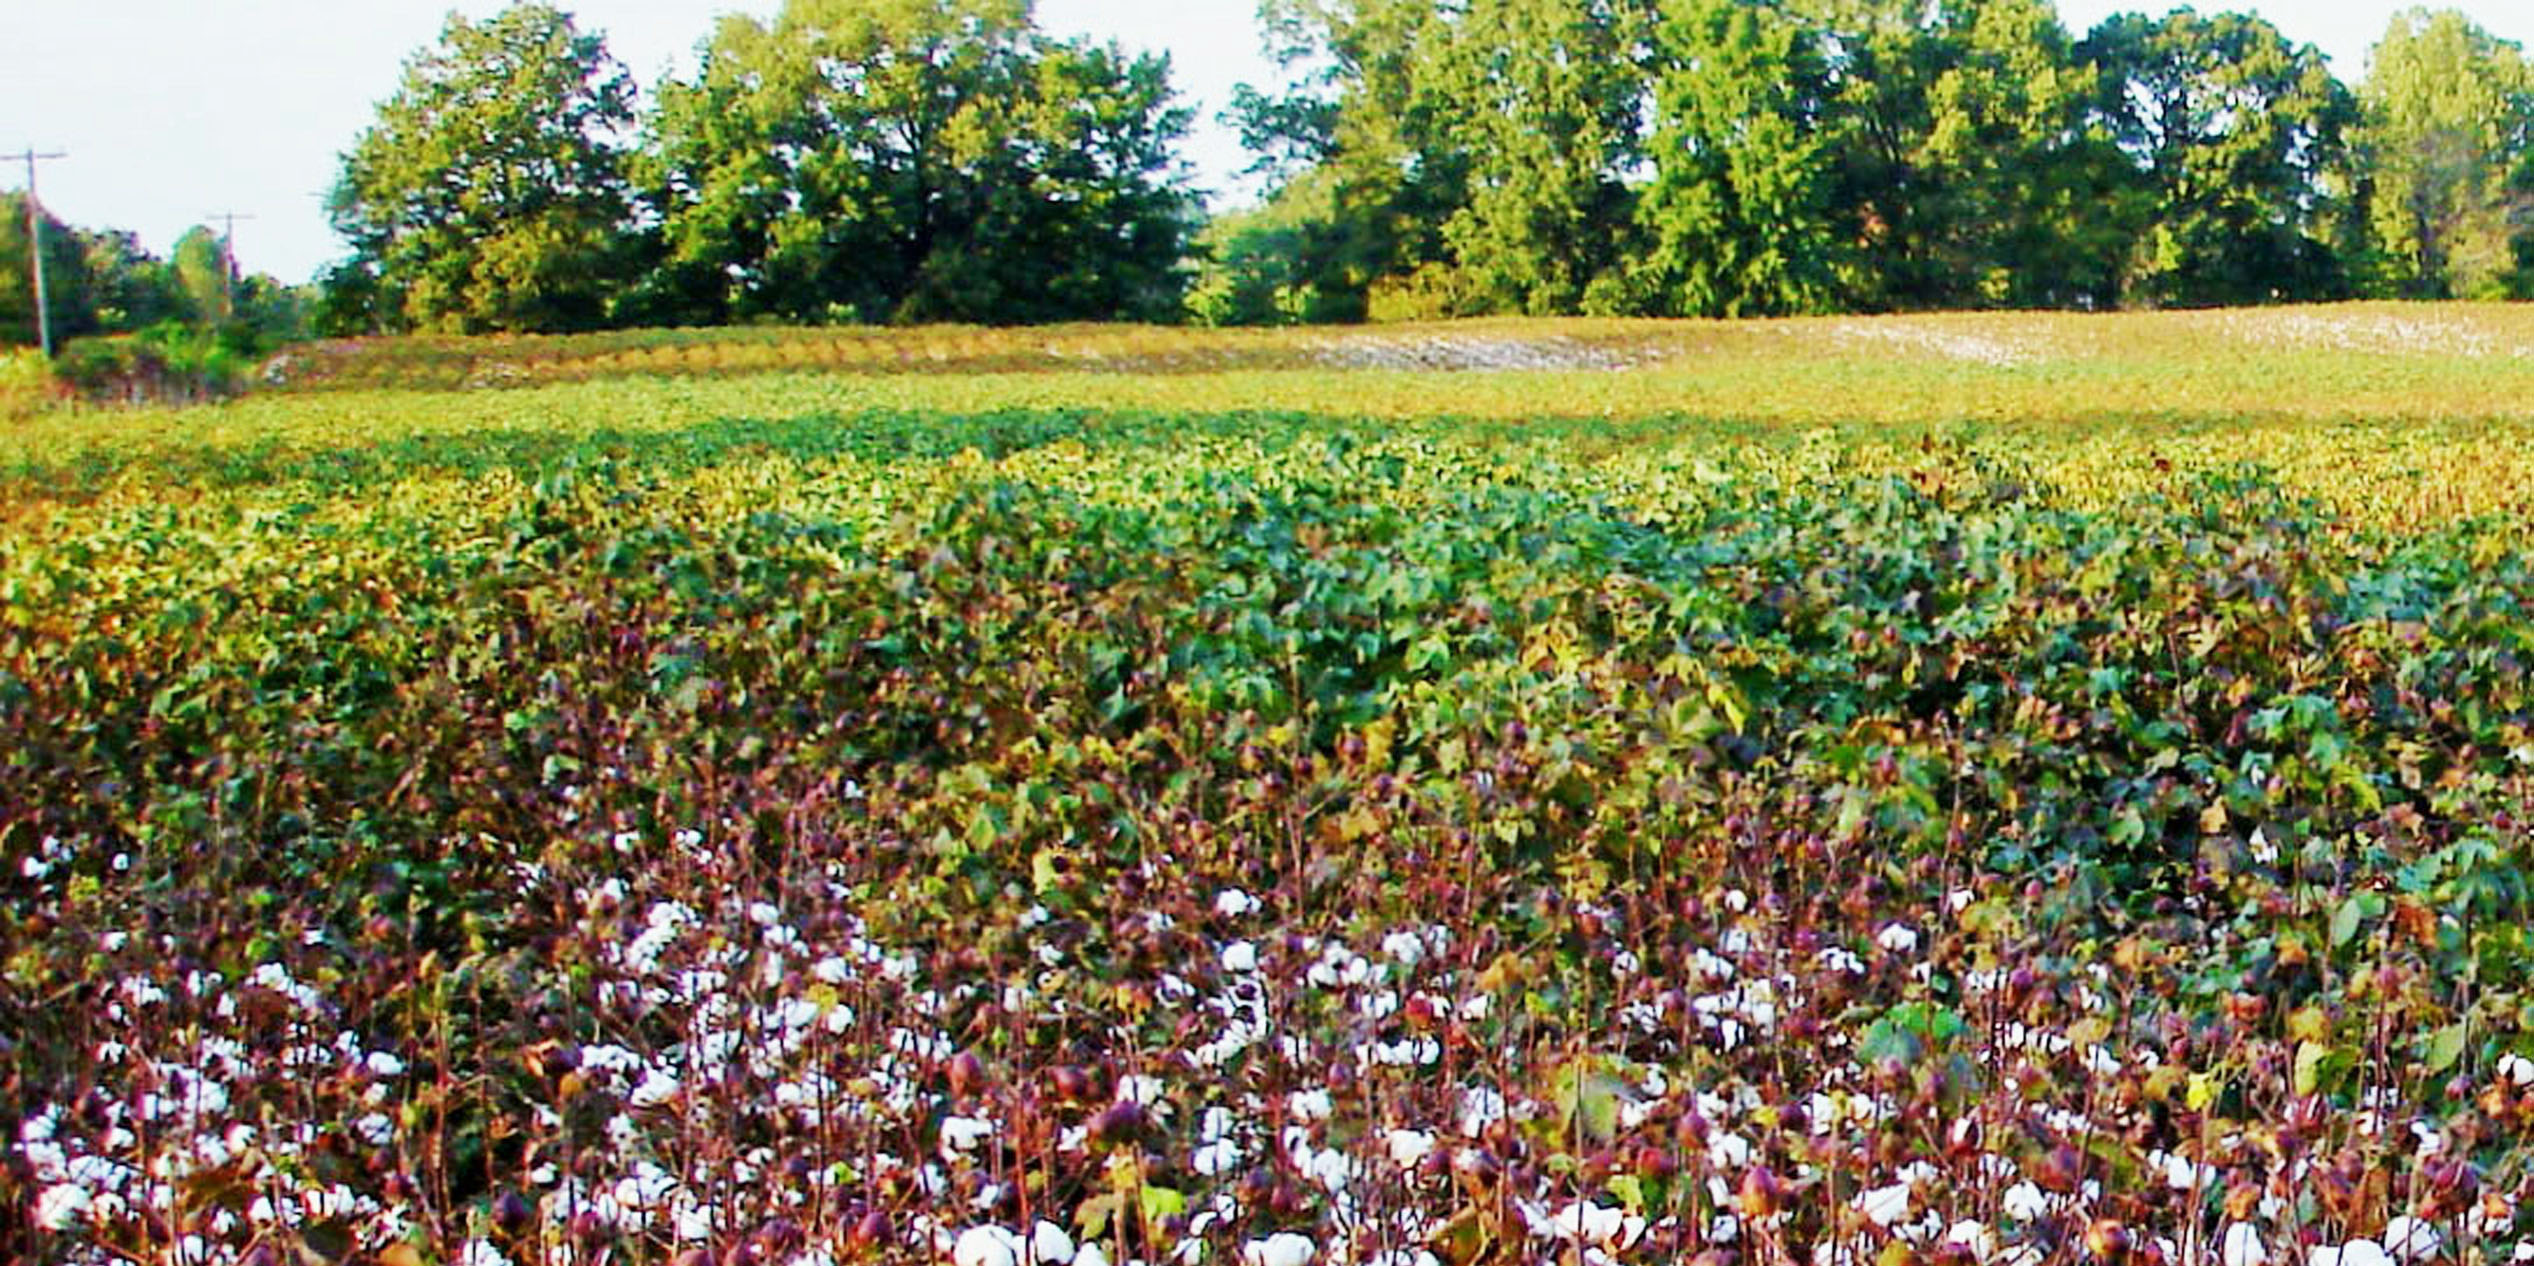 5.cotton field